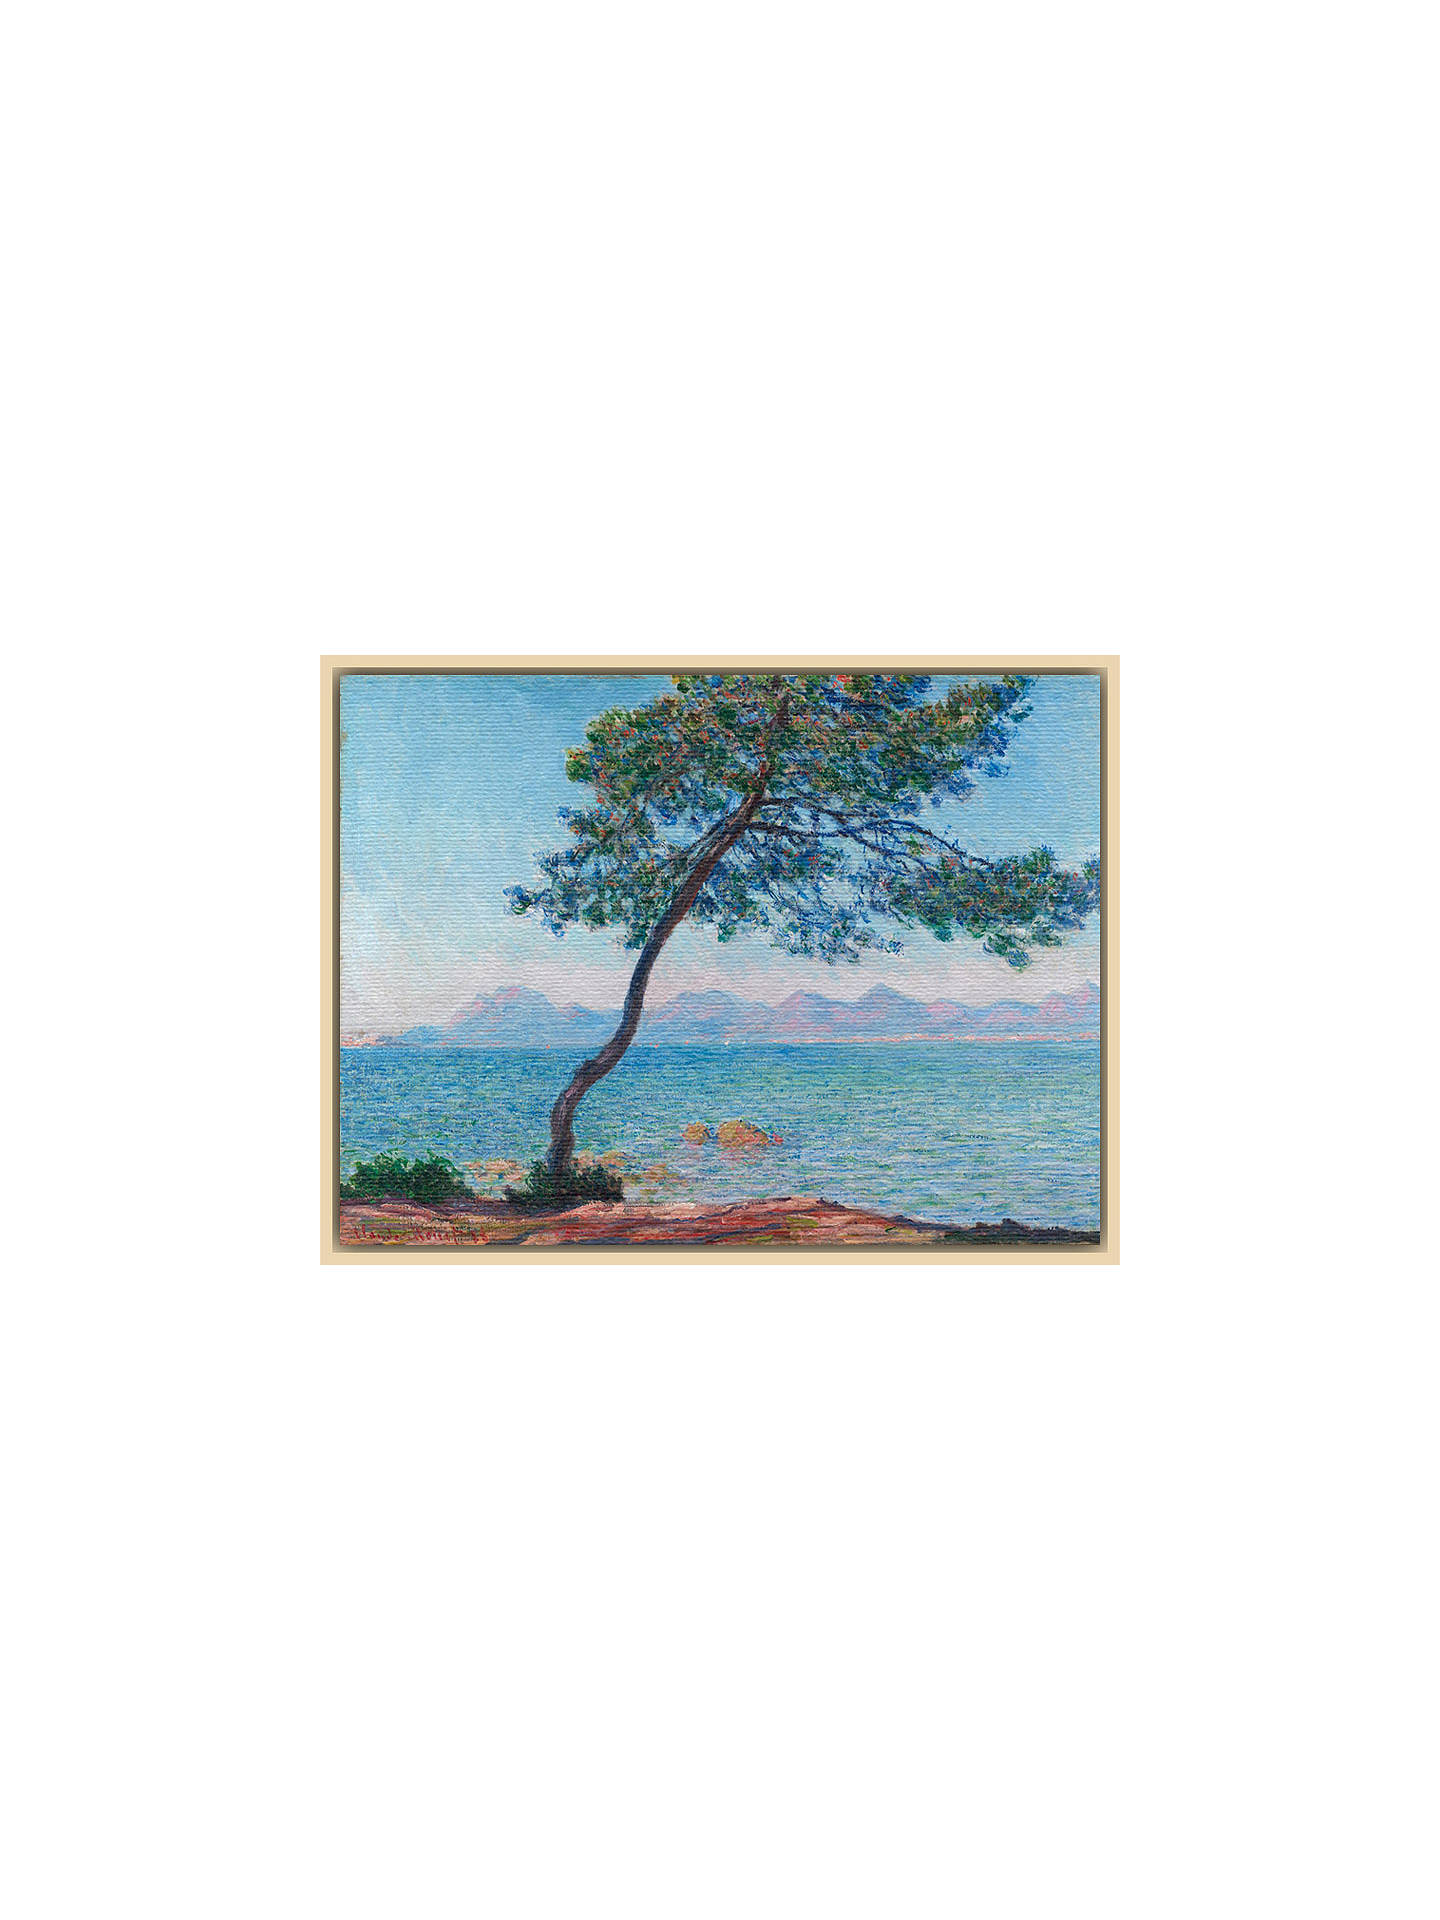 Buy The Courtauld Gallery, Claude Monet - Antibes 1888 Print, Natural Ash Framed Canvas, 40 x 50cm Online at johnlewis.com